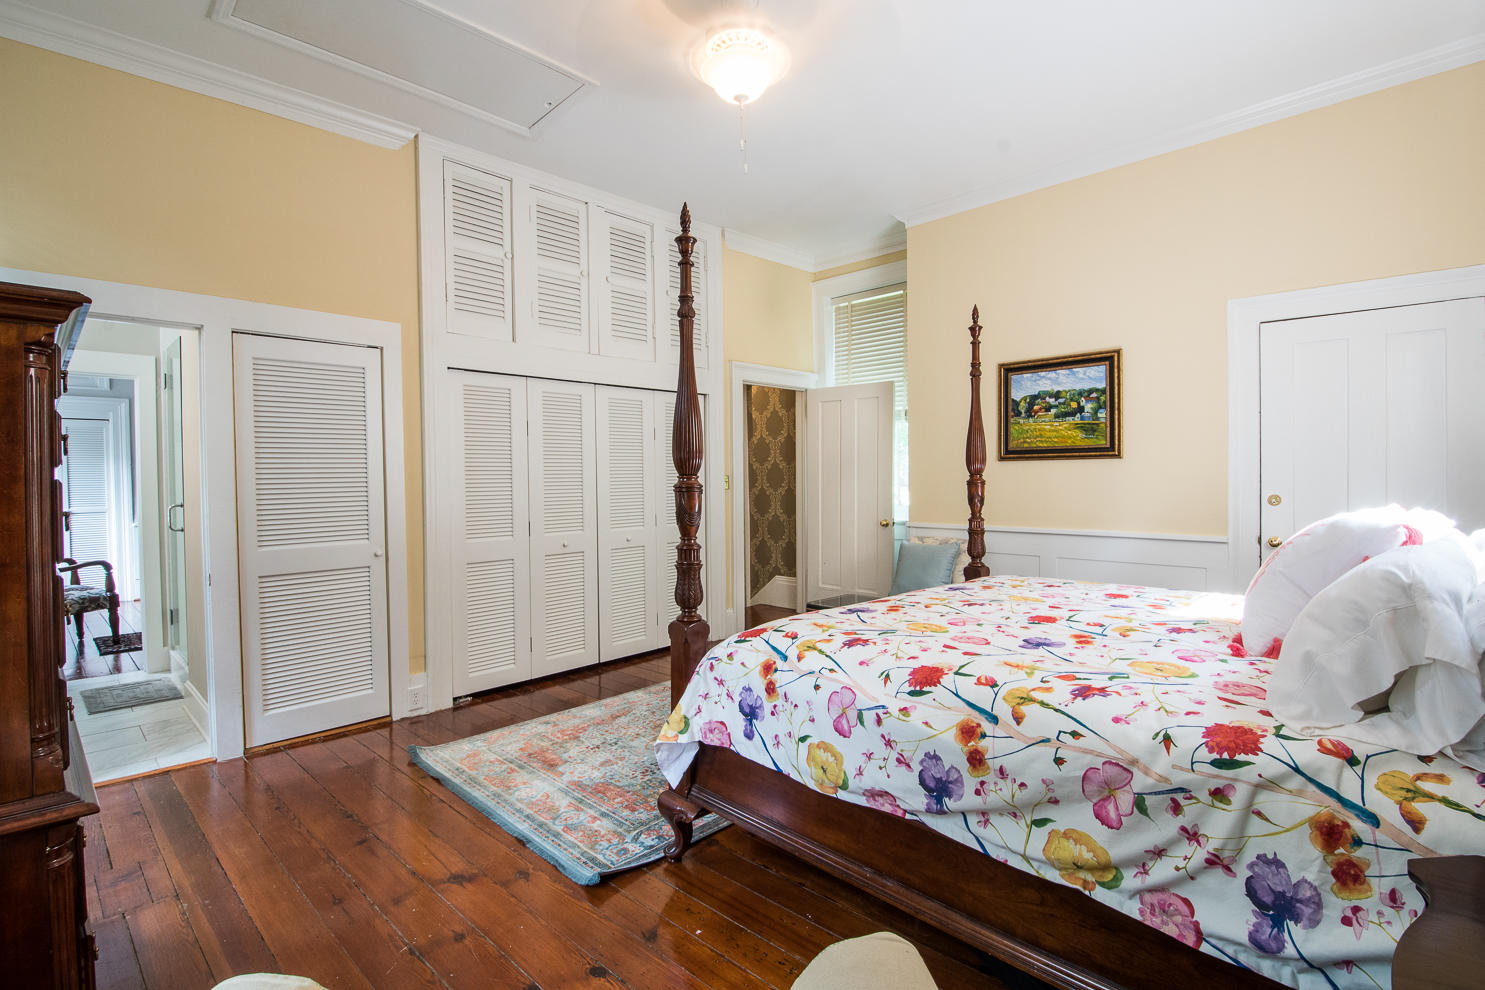 South of Broad Homes For Sale - 1 Prices, Charleston, SC - 39